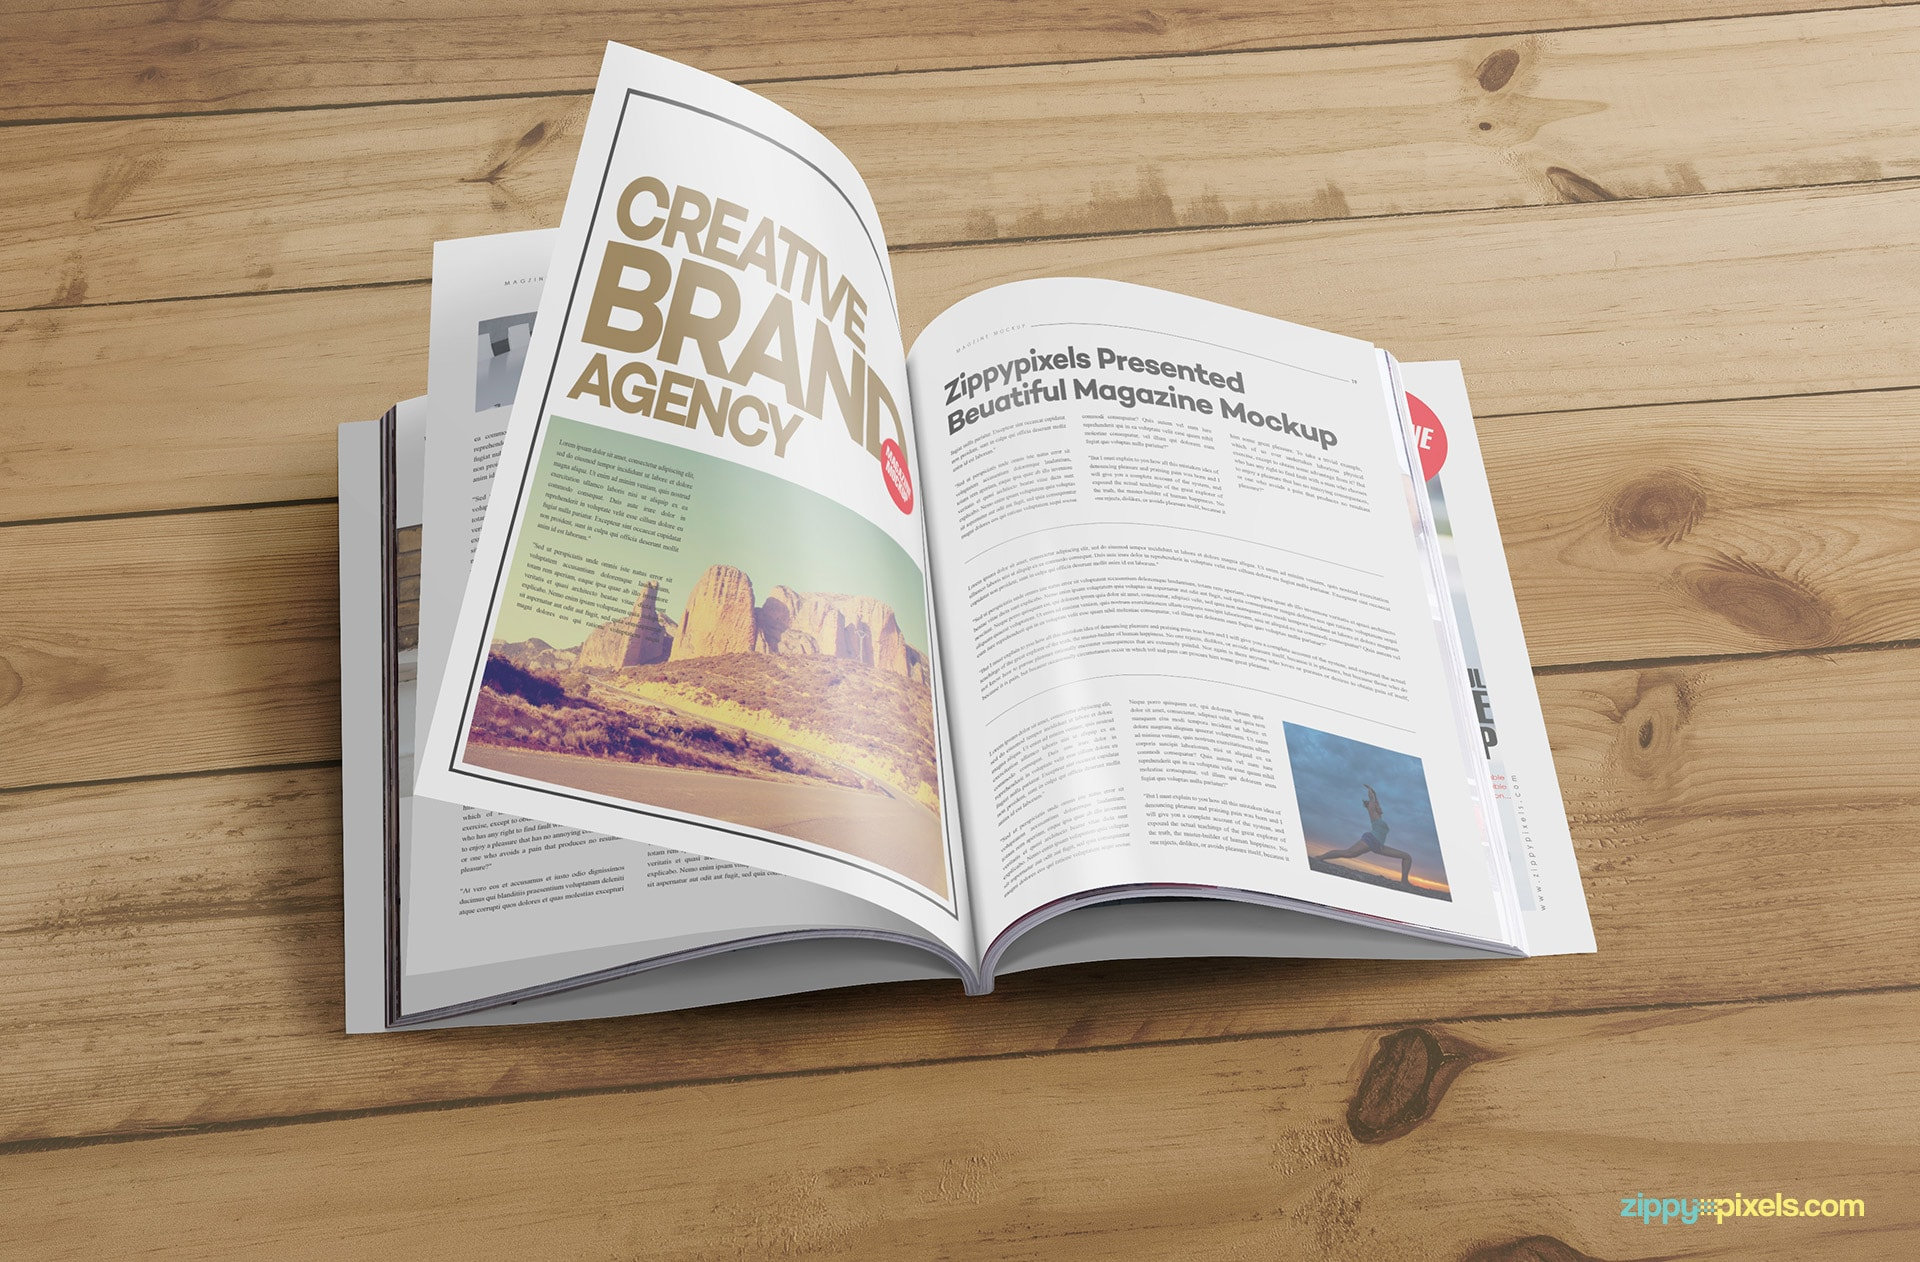 showcase your spread editorial designs with these photorealistic magazine psd mock ups